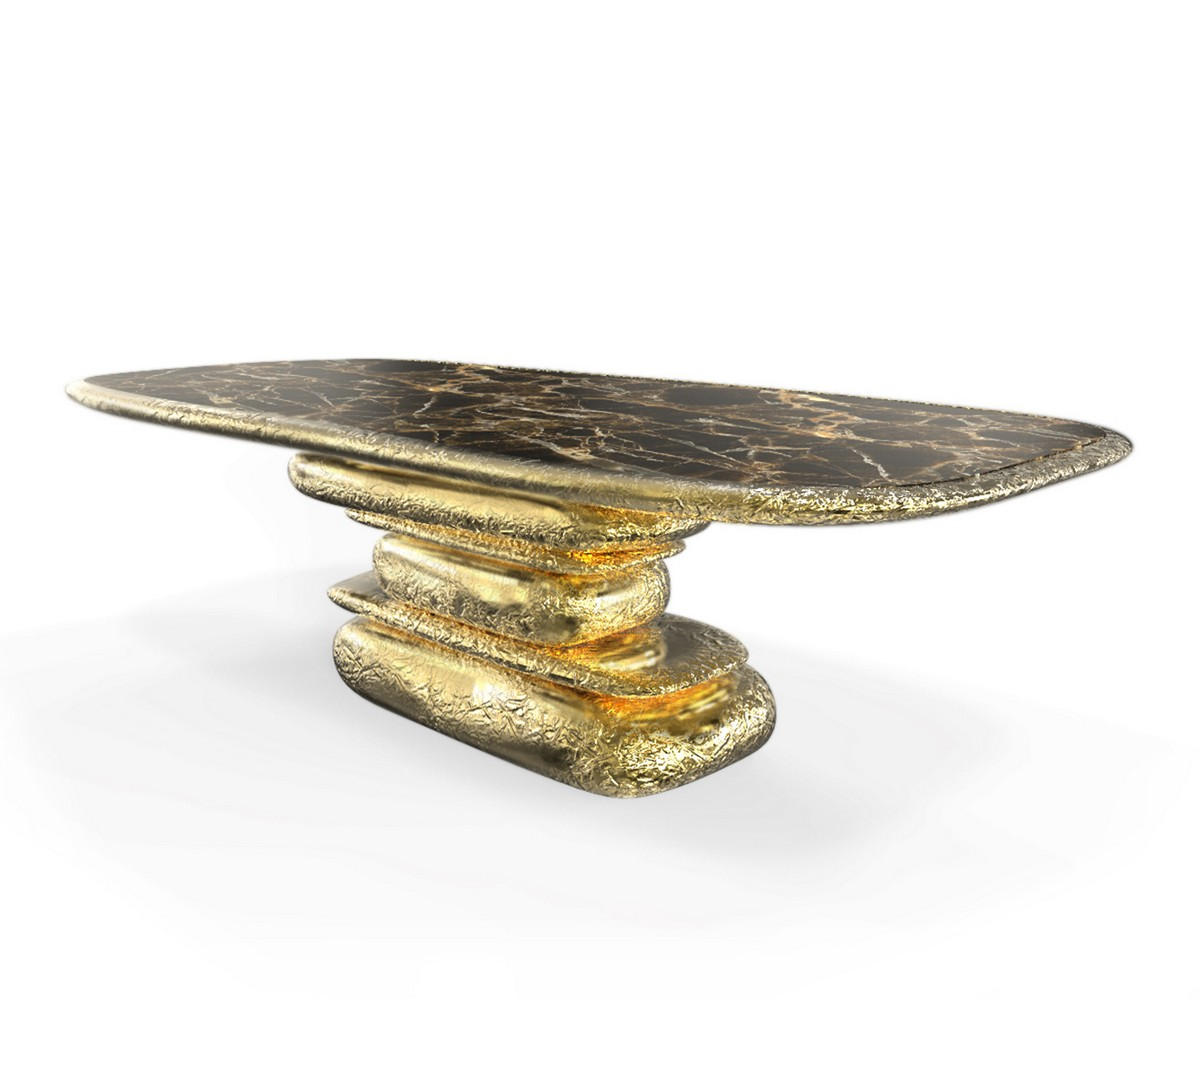 Top Golden Dining Tables For Your Dining Room [object object] Exquisite Dining Tables To Level Up Your Home Decor stonehenge